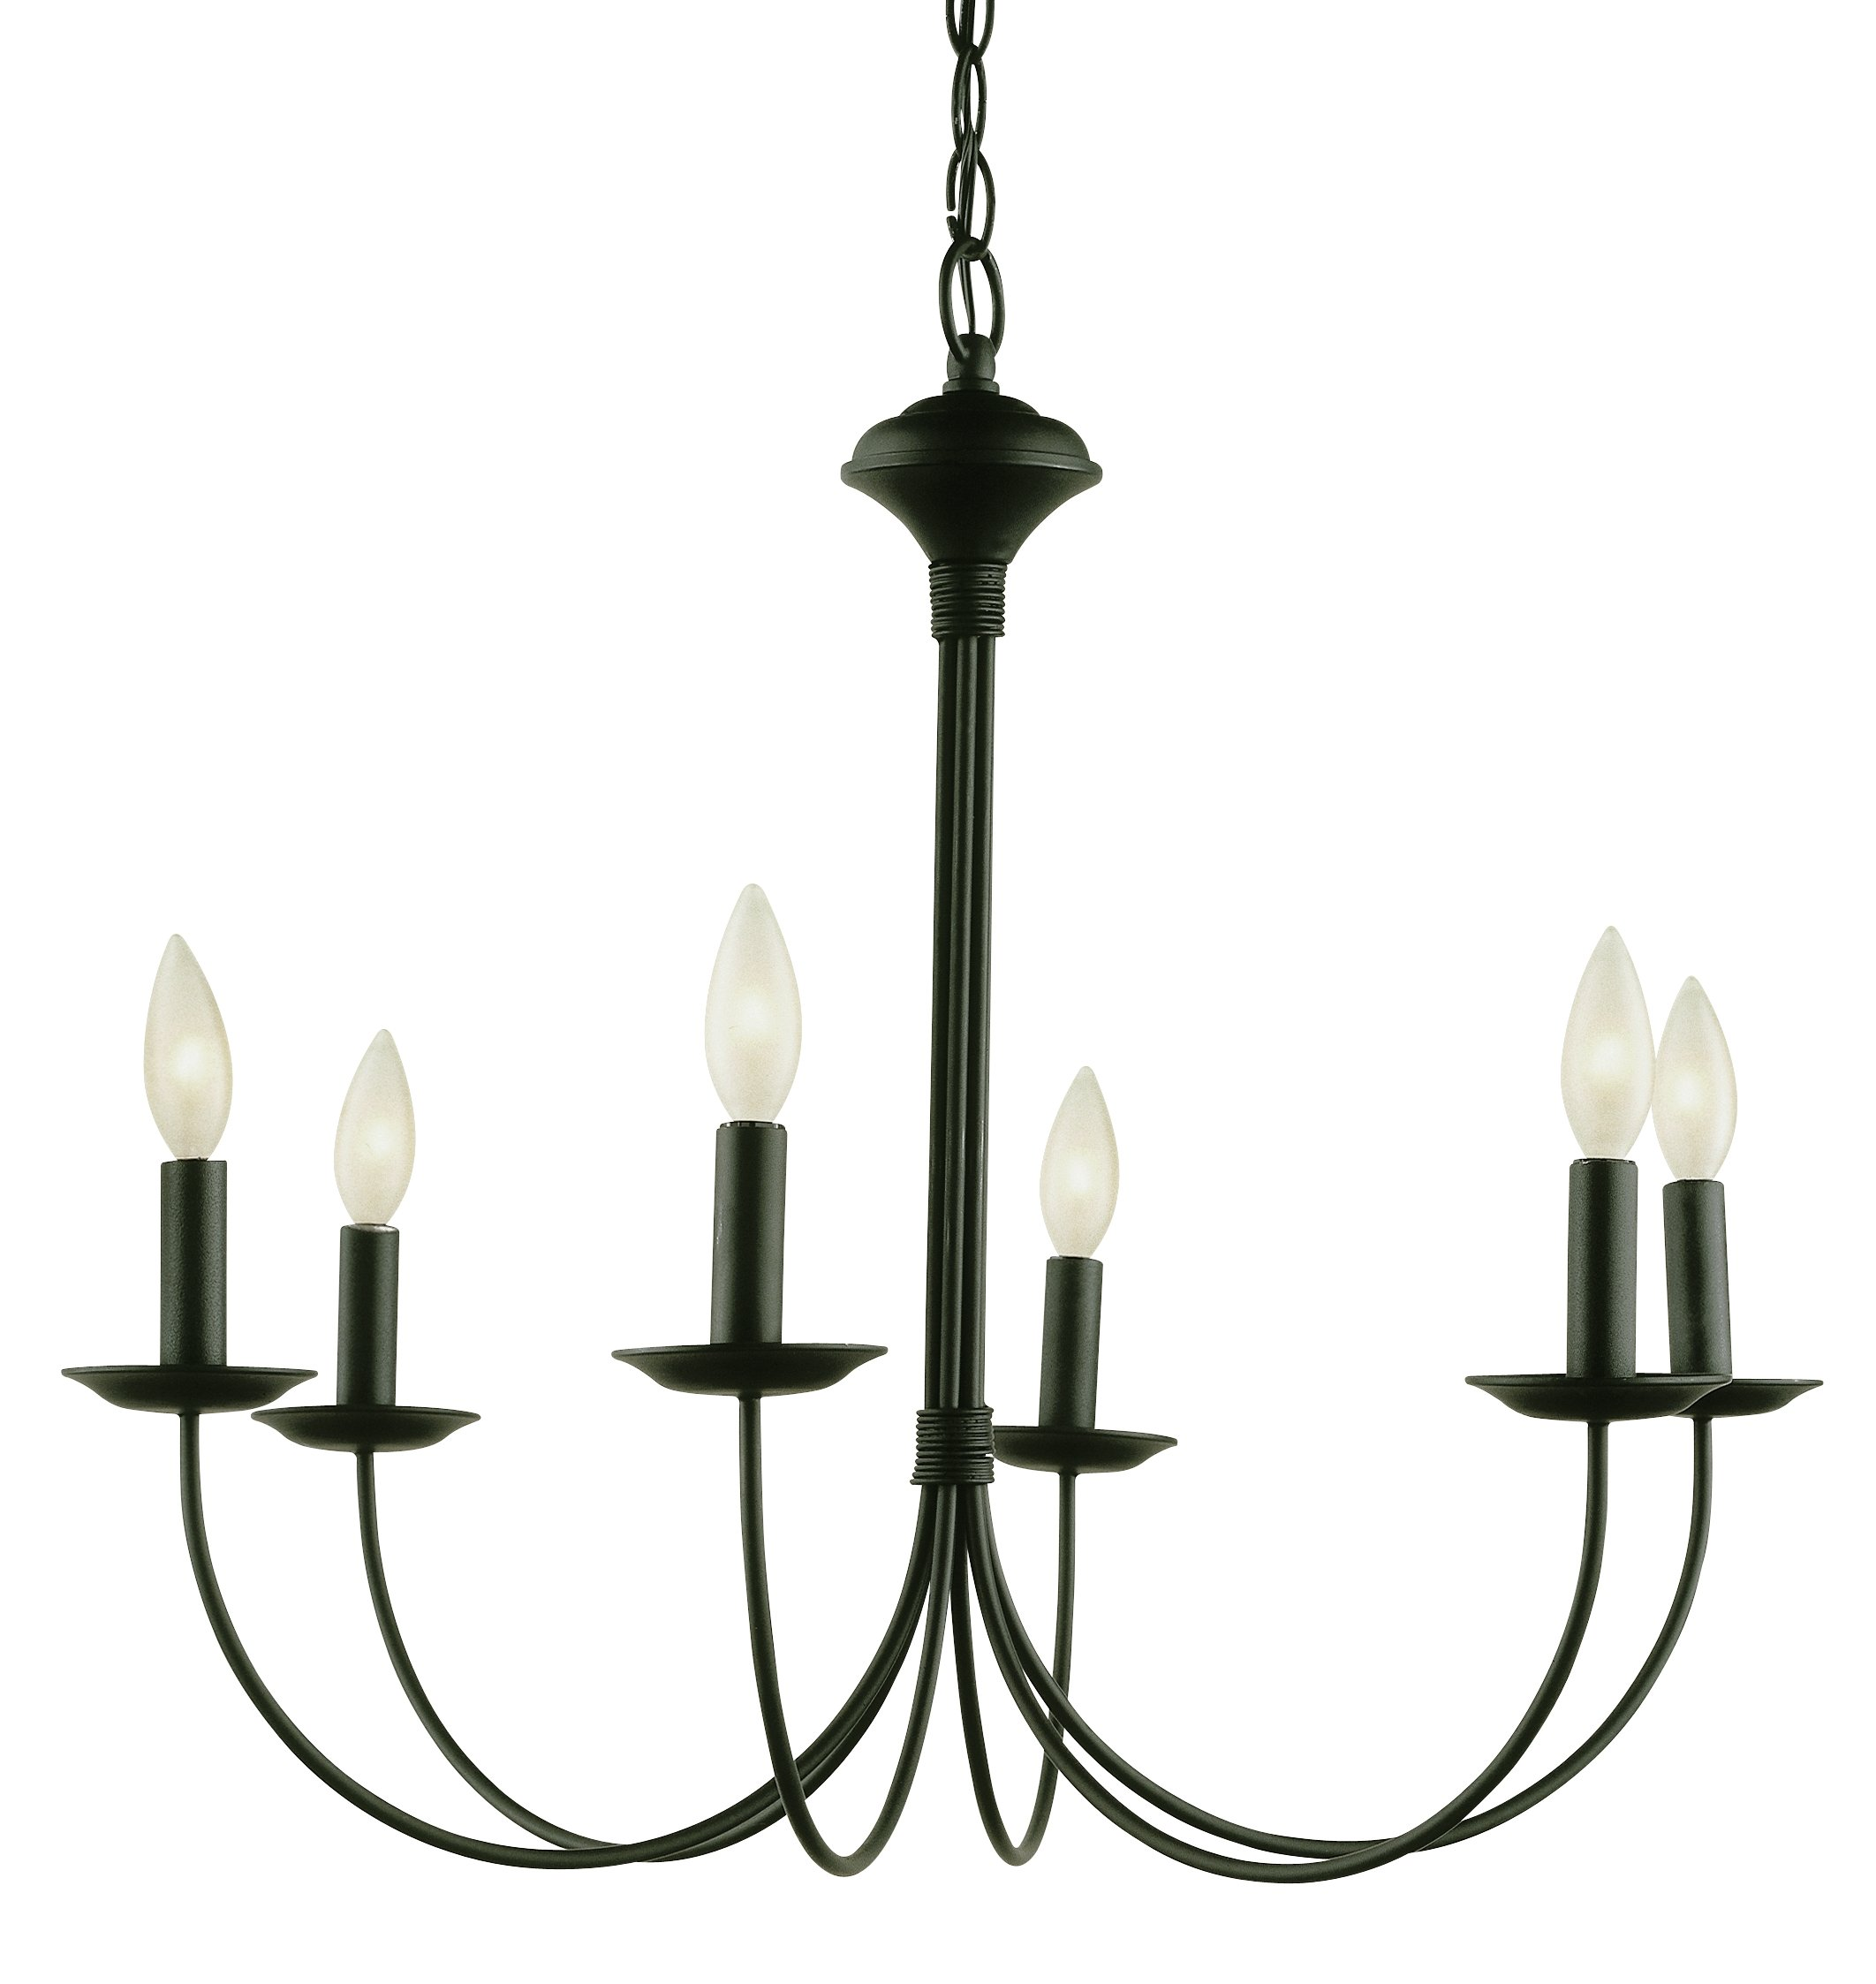 Trans Glob Lighting 9016 ROB Indoor Candle Chandelier, Rubbed Oil Bronze, 22'' x 24'' x 24''